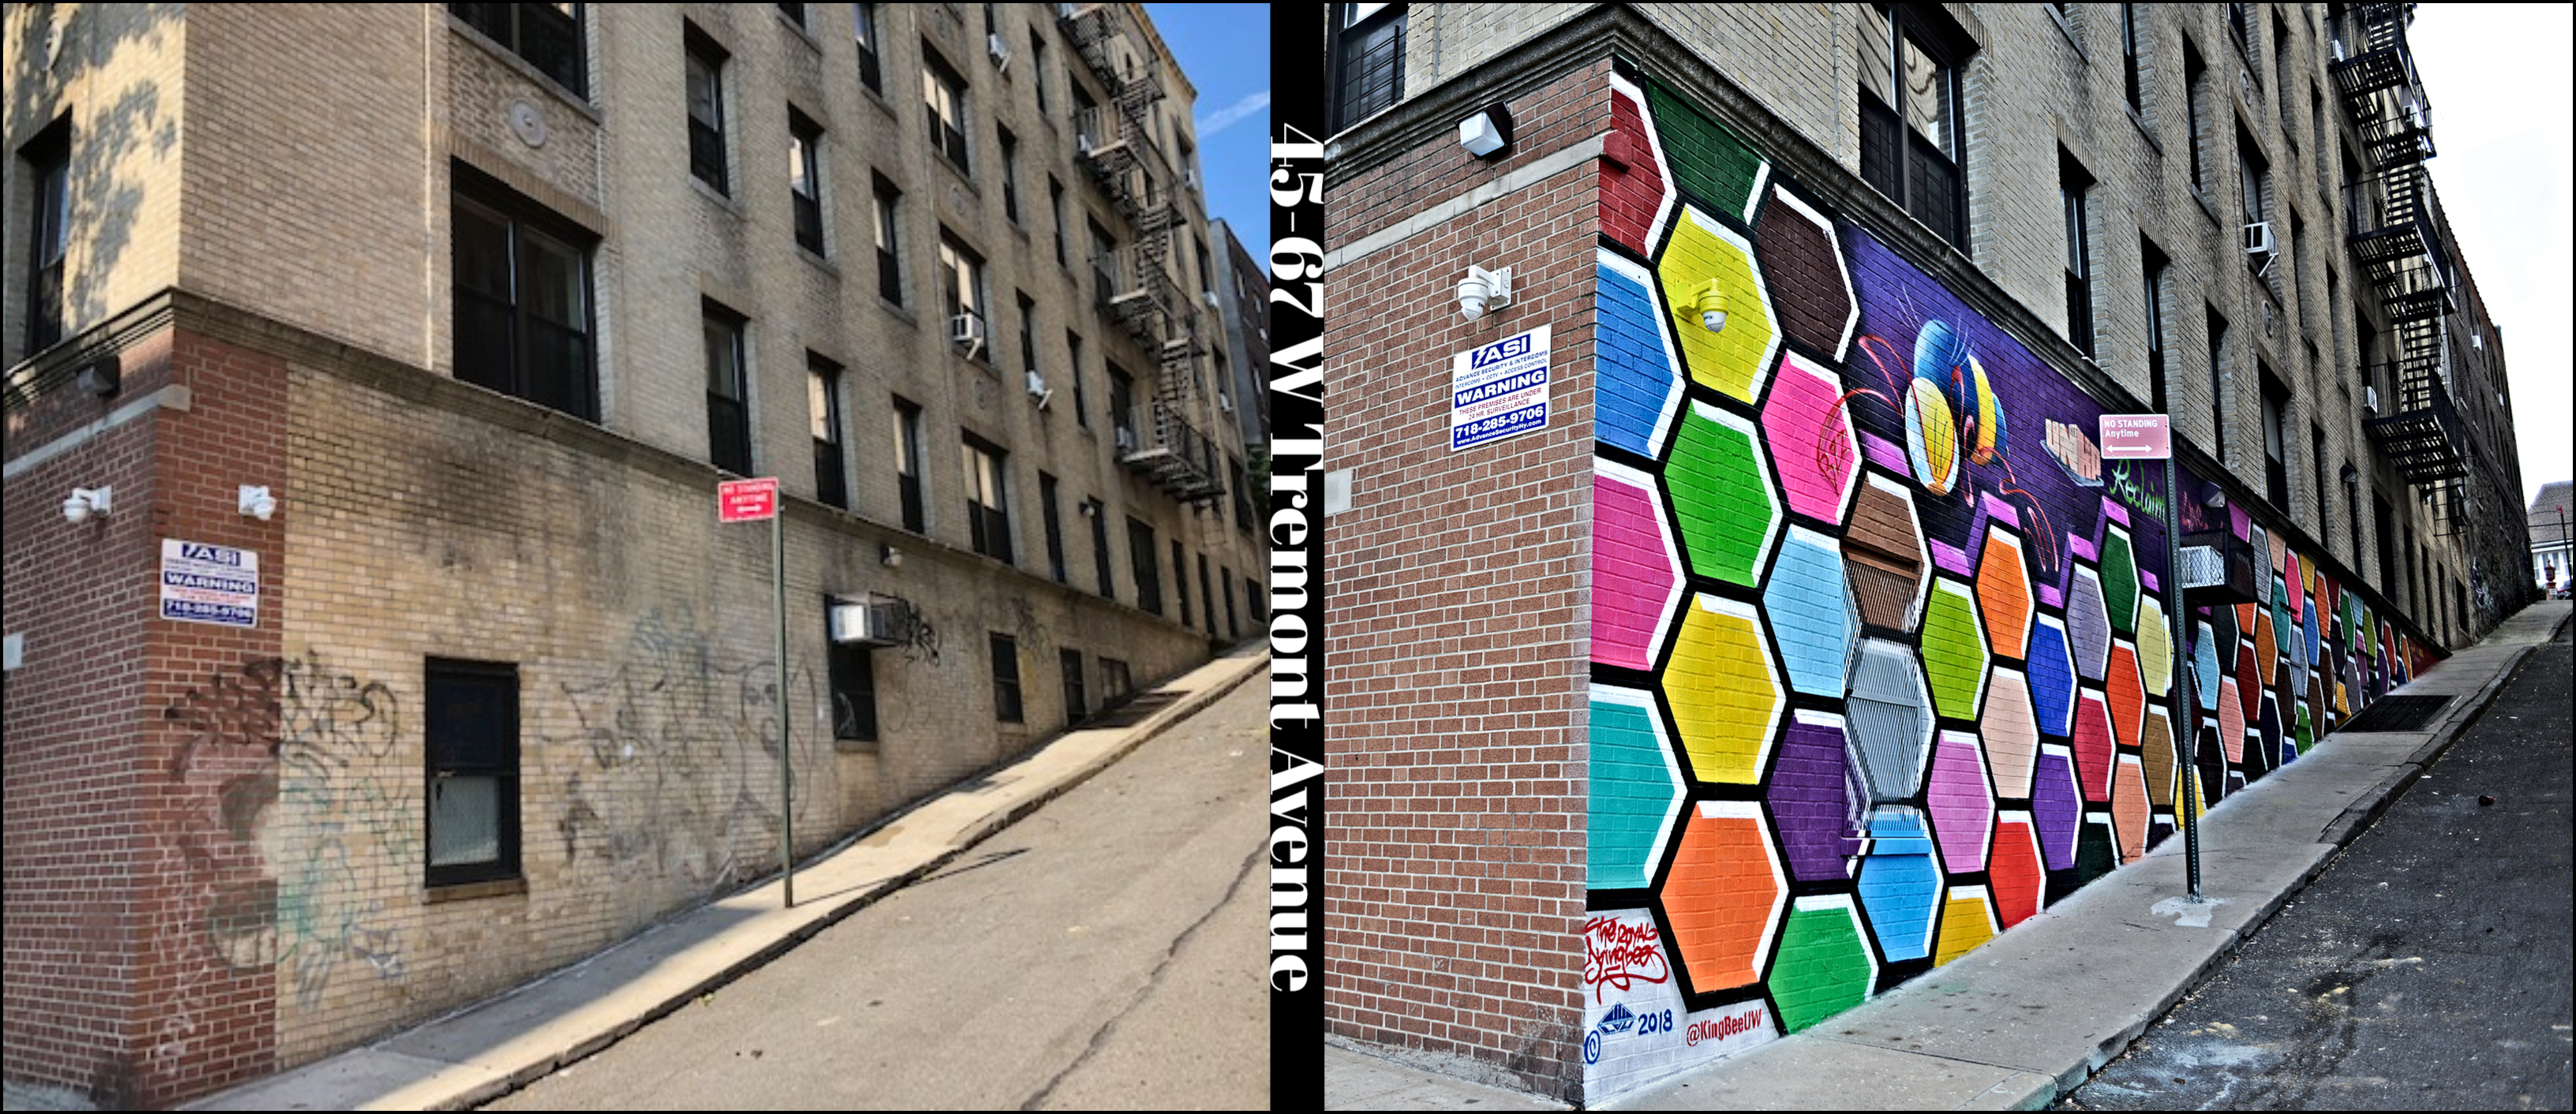 The wall on the corner of West tremont and kingsland place (before and after)